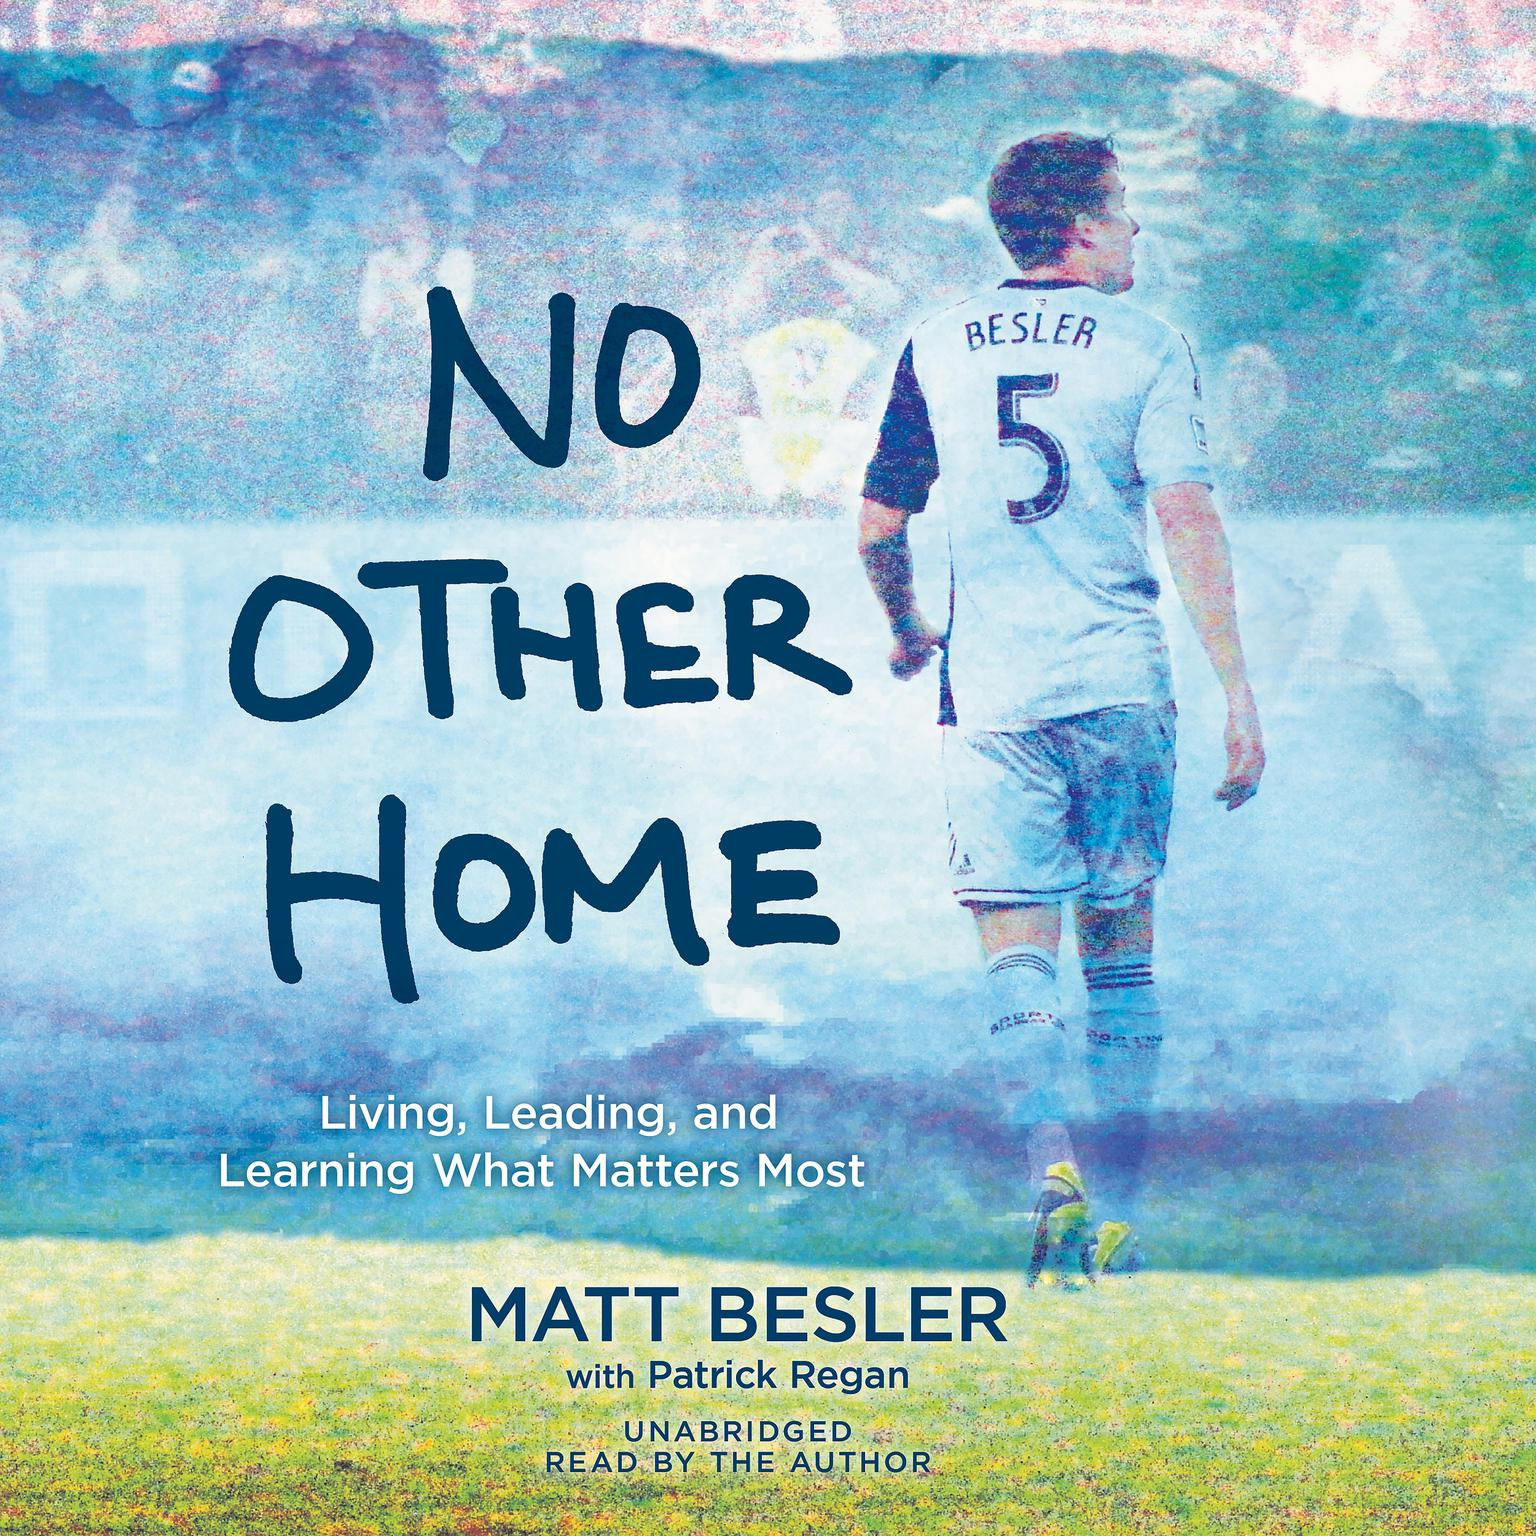 No Other Home: Living, Leading, and Learning What Matters Most Audiobook, by Matt Besler